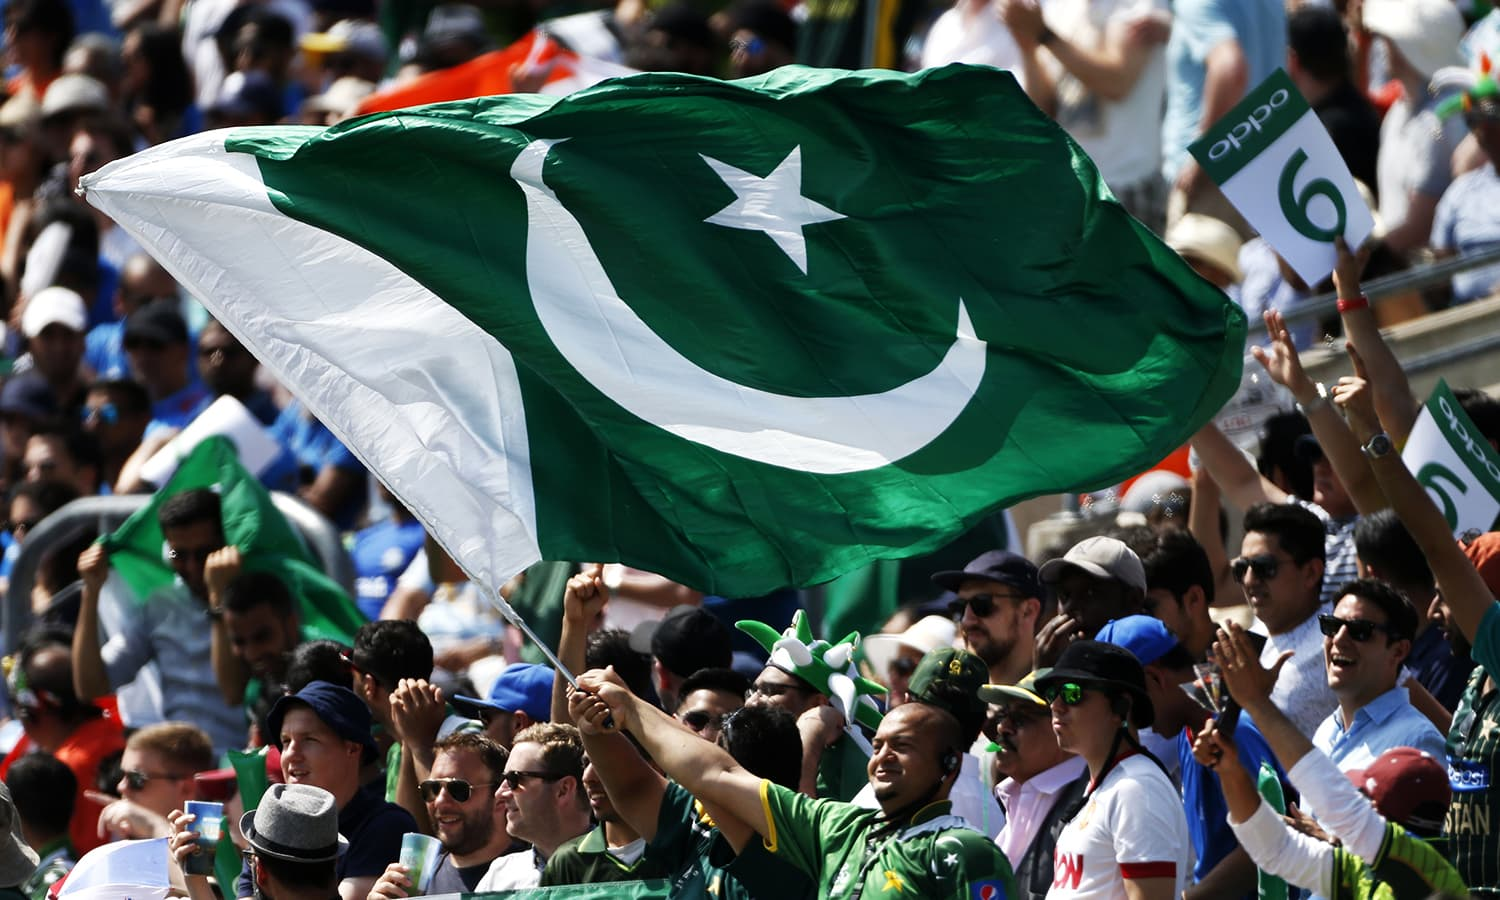 Pakistani fans celebrate a six.─Reuters